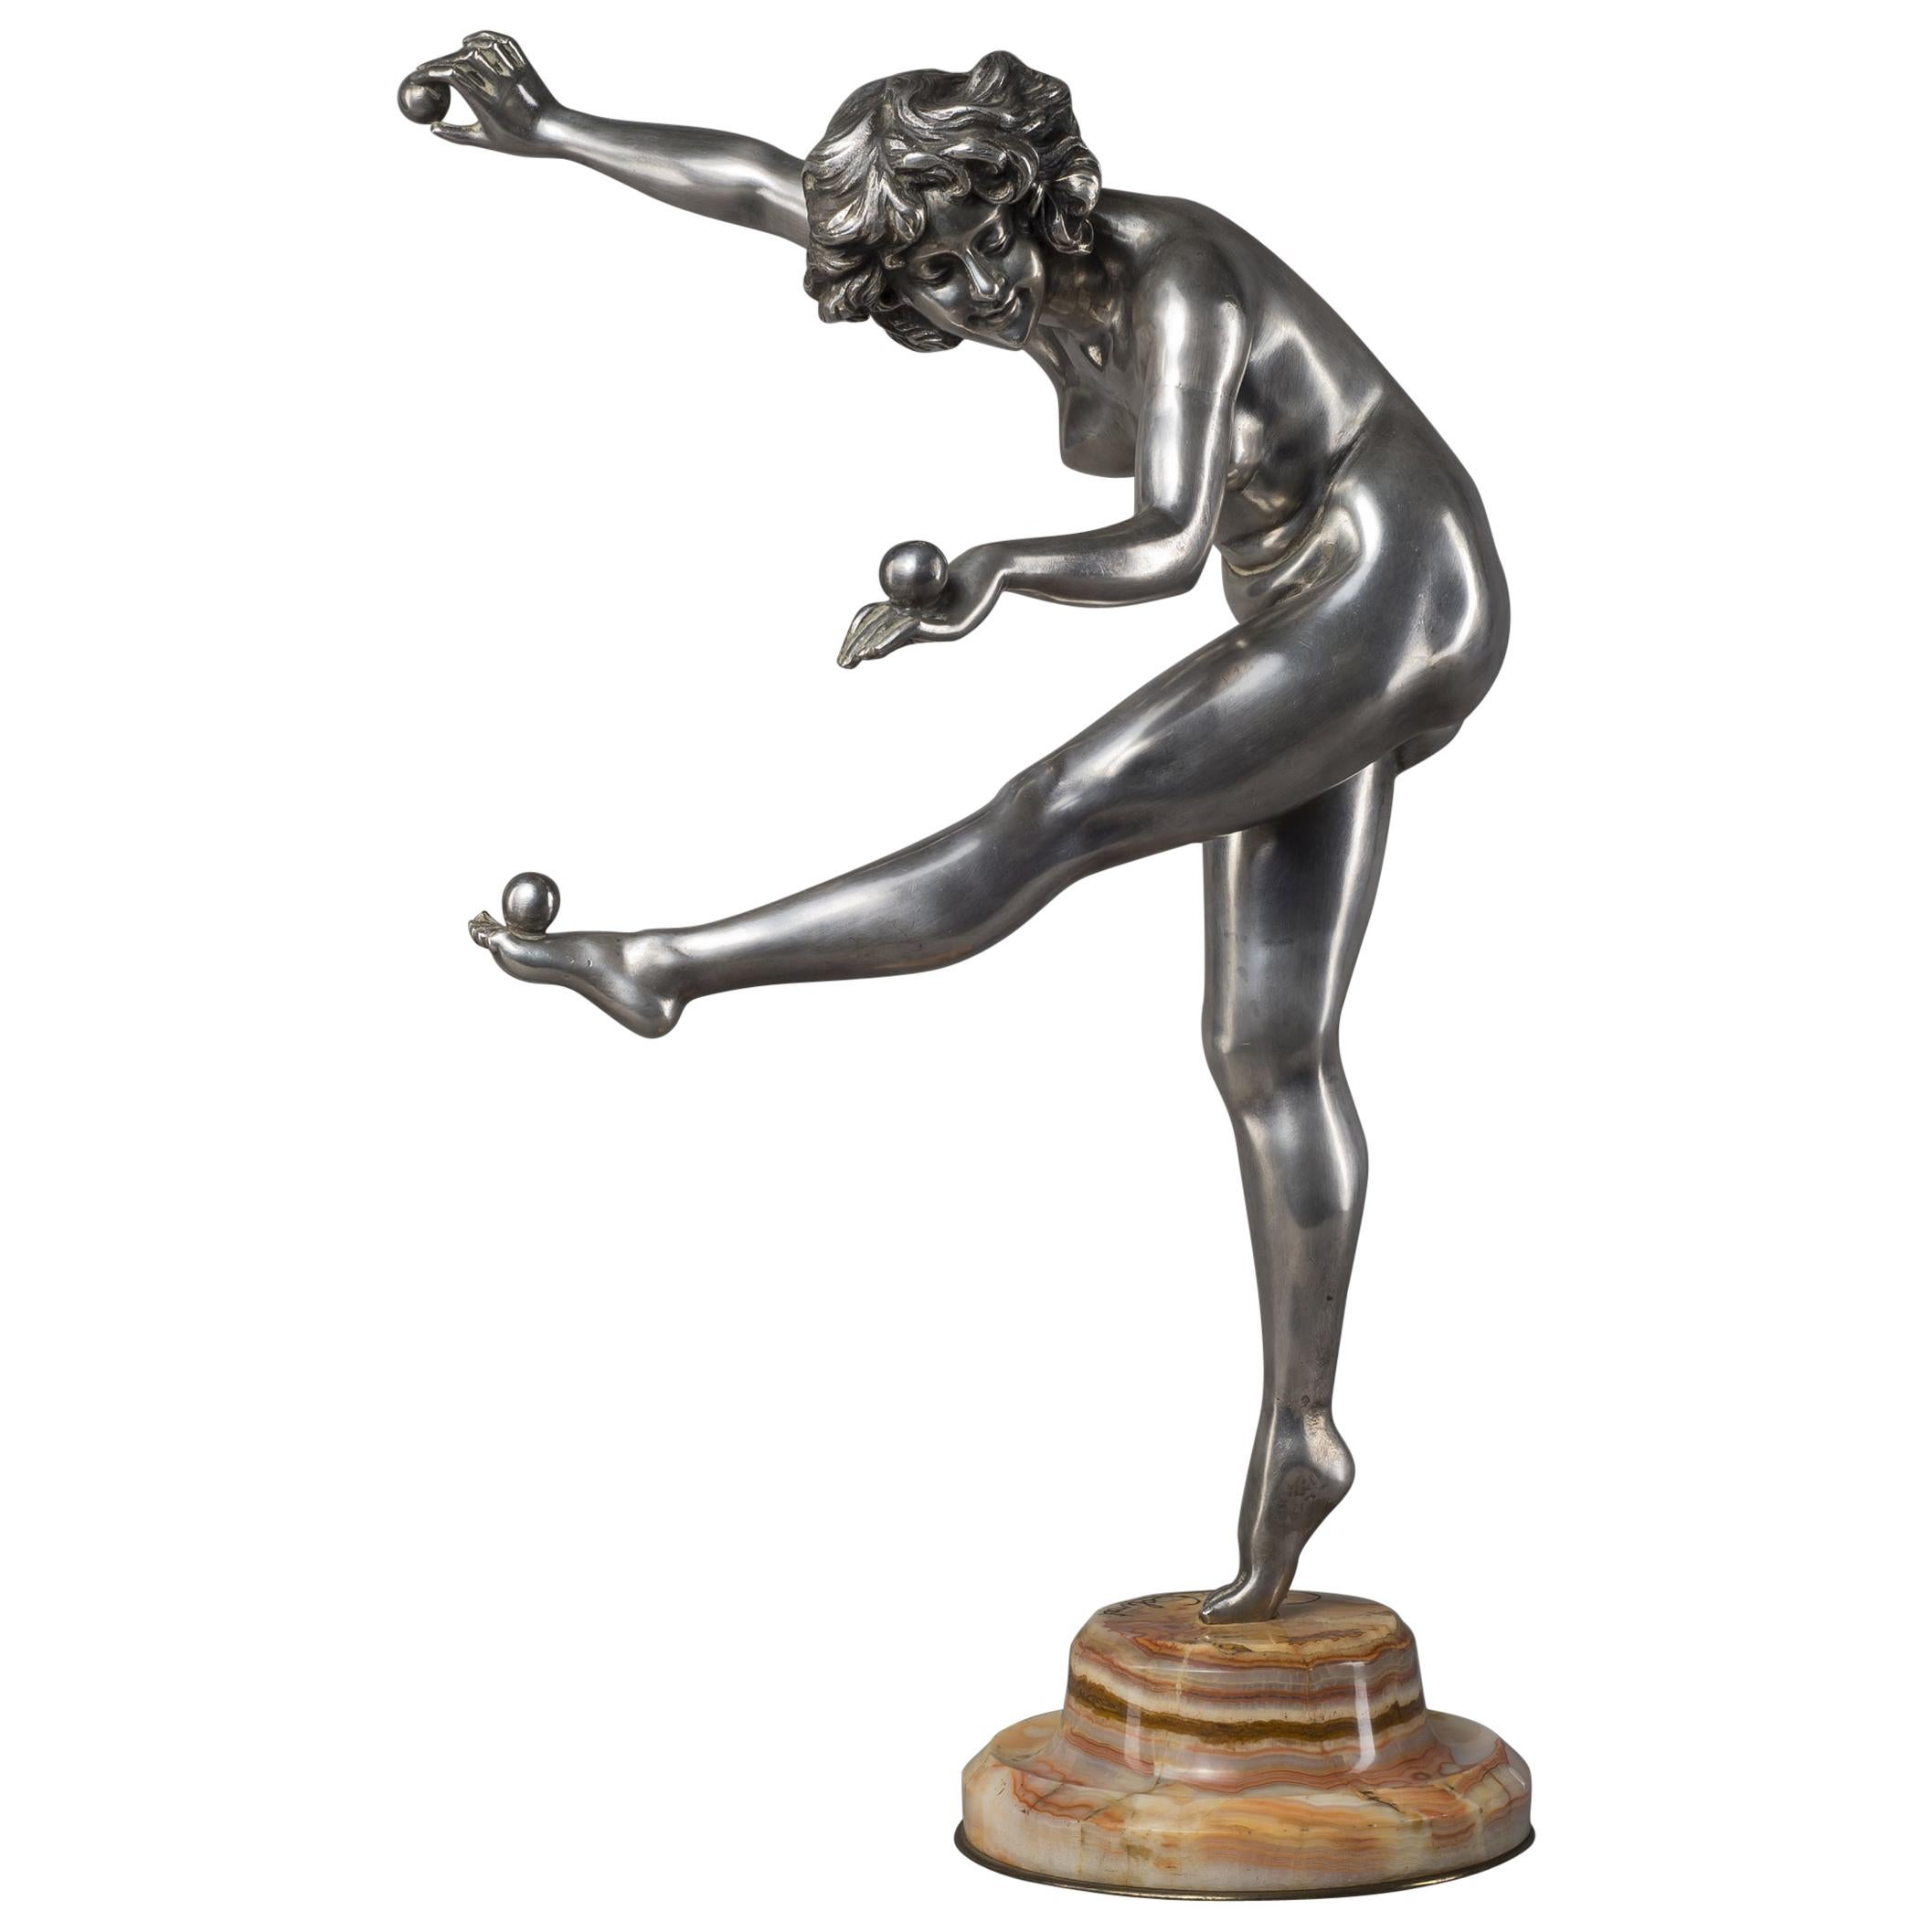 'The Juggler', an Art Deco Bronze Figure, by Claire J. R. Colinet, circa 1925